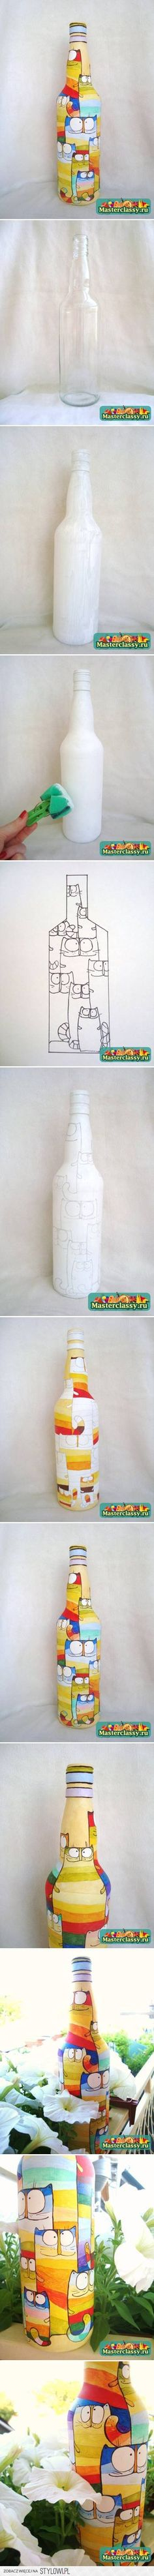 DIY Bottle of Acrylic Cat Painting DIY Projects